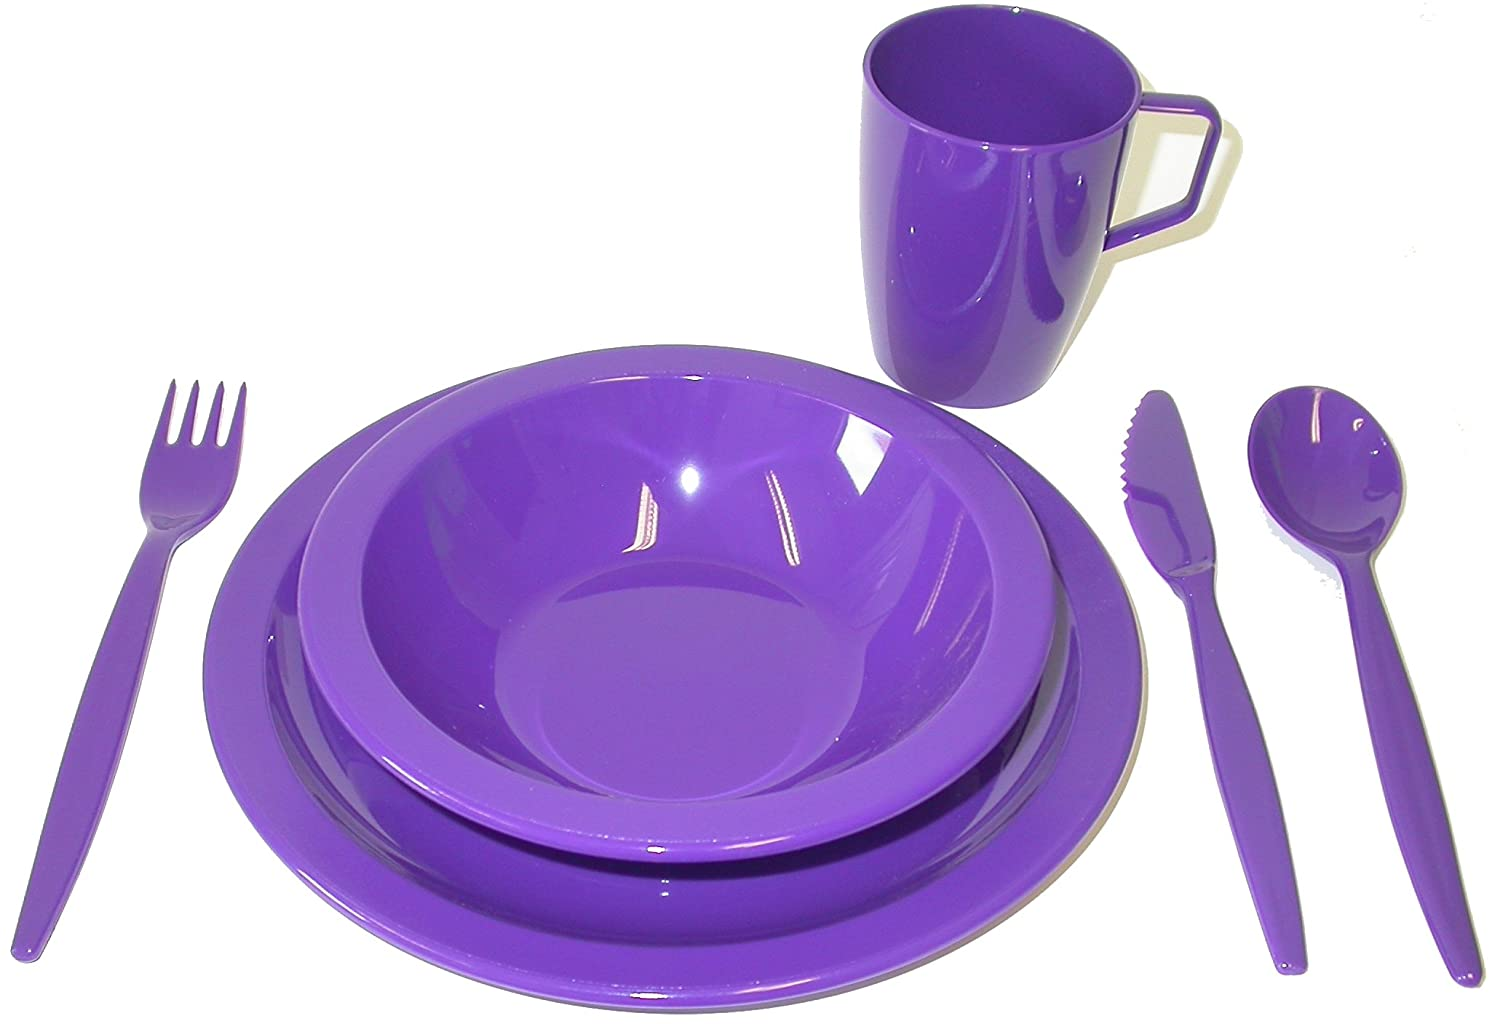 Harfield Polycarbonate Camping Tableware Set - Purple Harfield Components Ltd H8528